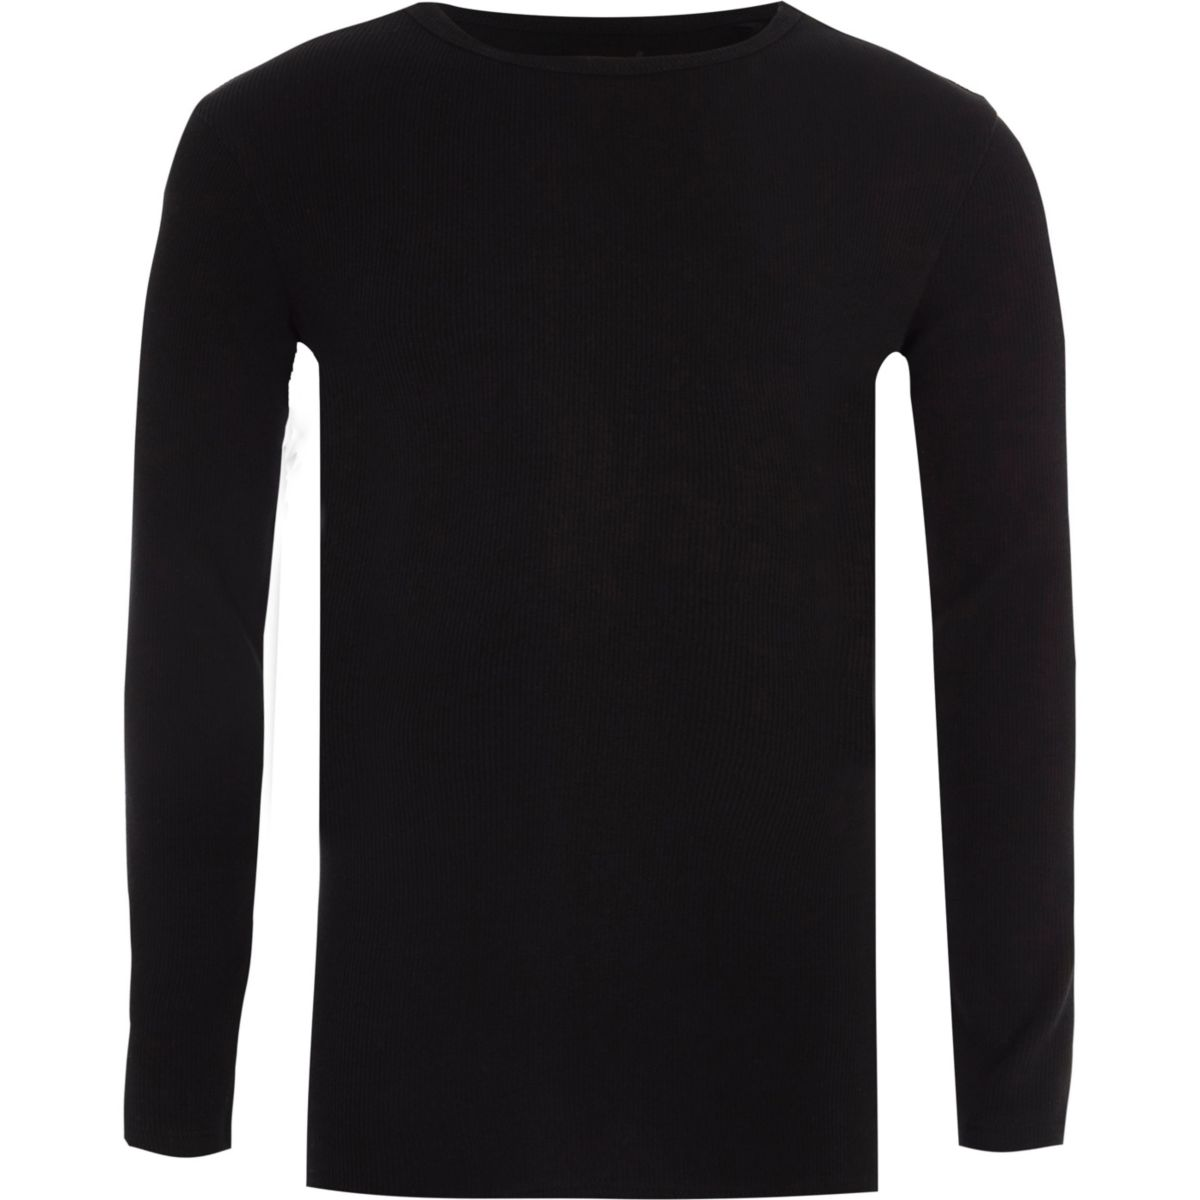 Boys black ribbed long sleeve T-shirt